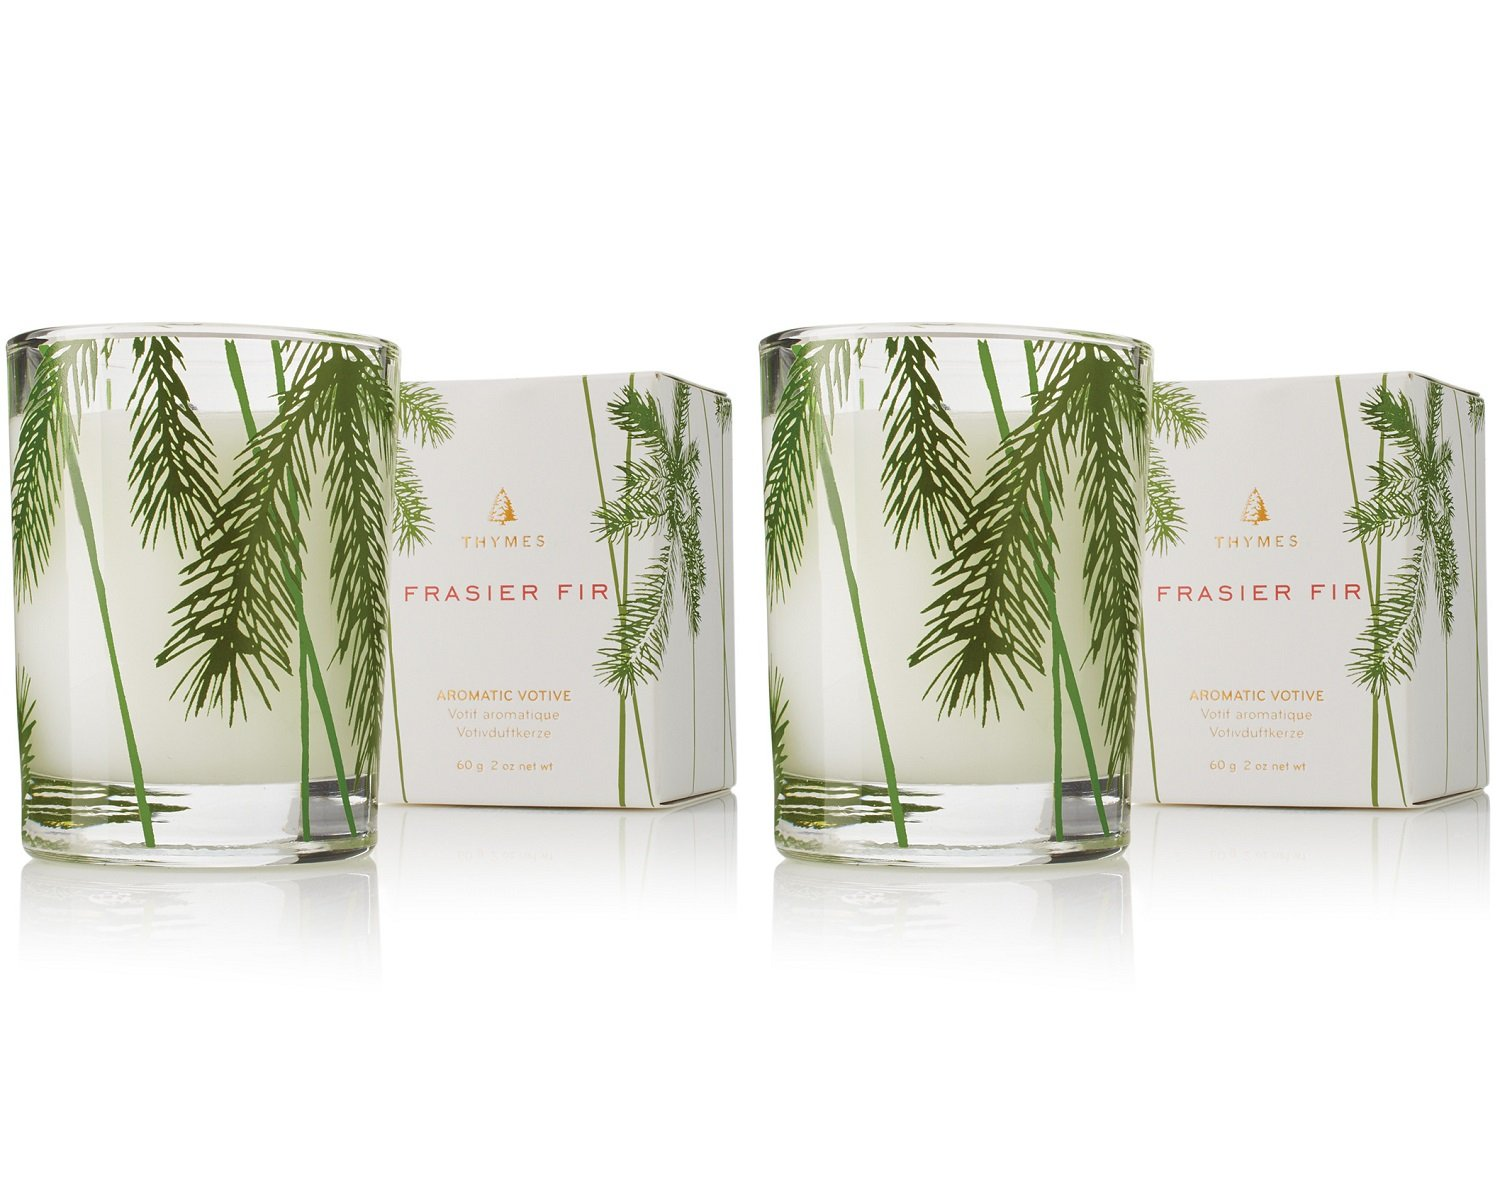 Thymes - Fragrant Frasier Fir Votive Candle with 15-Hour Burn Time - 2 Ounces 0520733000